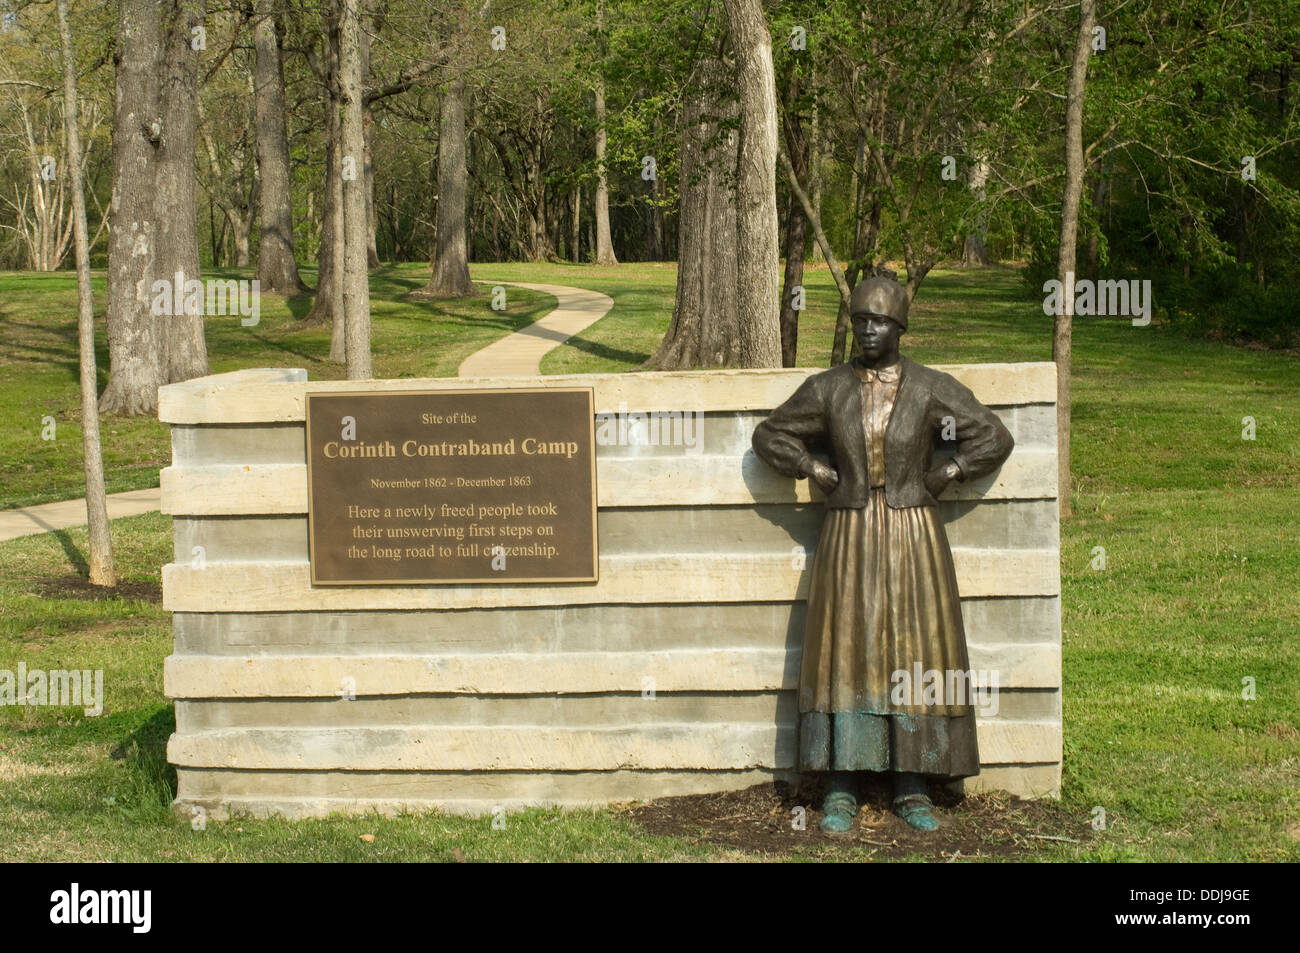 Memorial to freed slaves who were housed at Union Army's Contraband Camp in Corinth MS, 1862-1864. Digital photograph - Stock Image